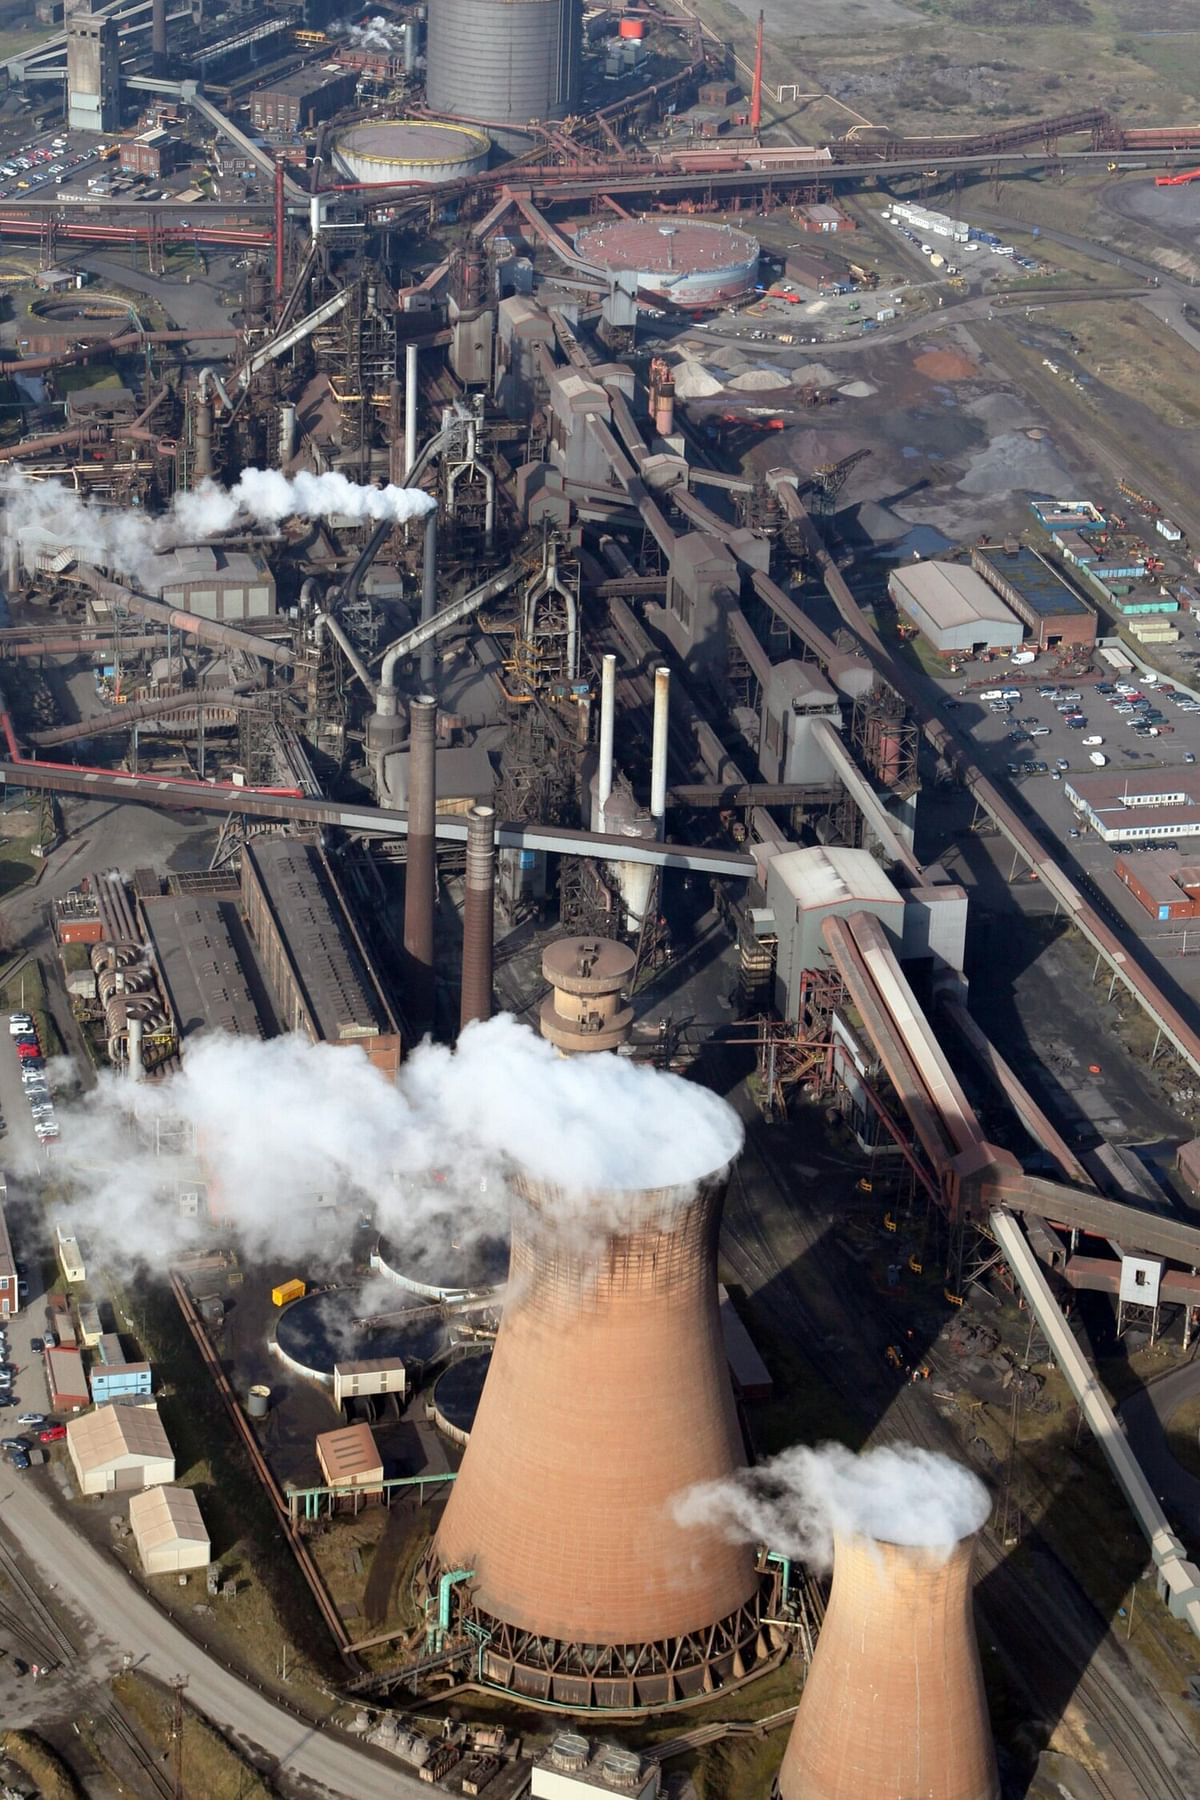 China's Steel Production in 2021 to Increase by 4-7%